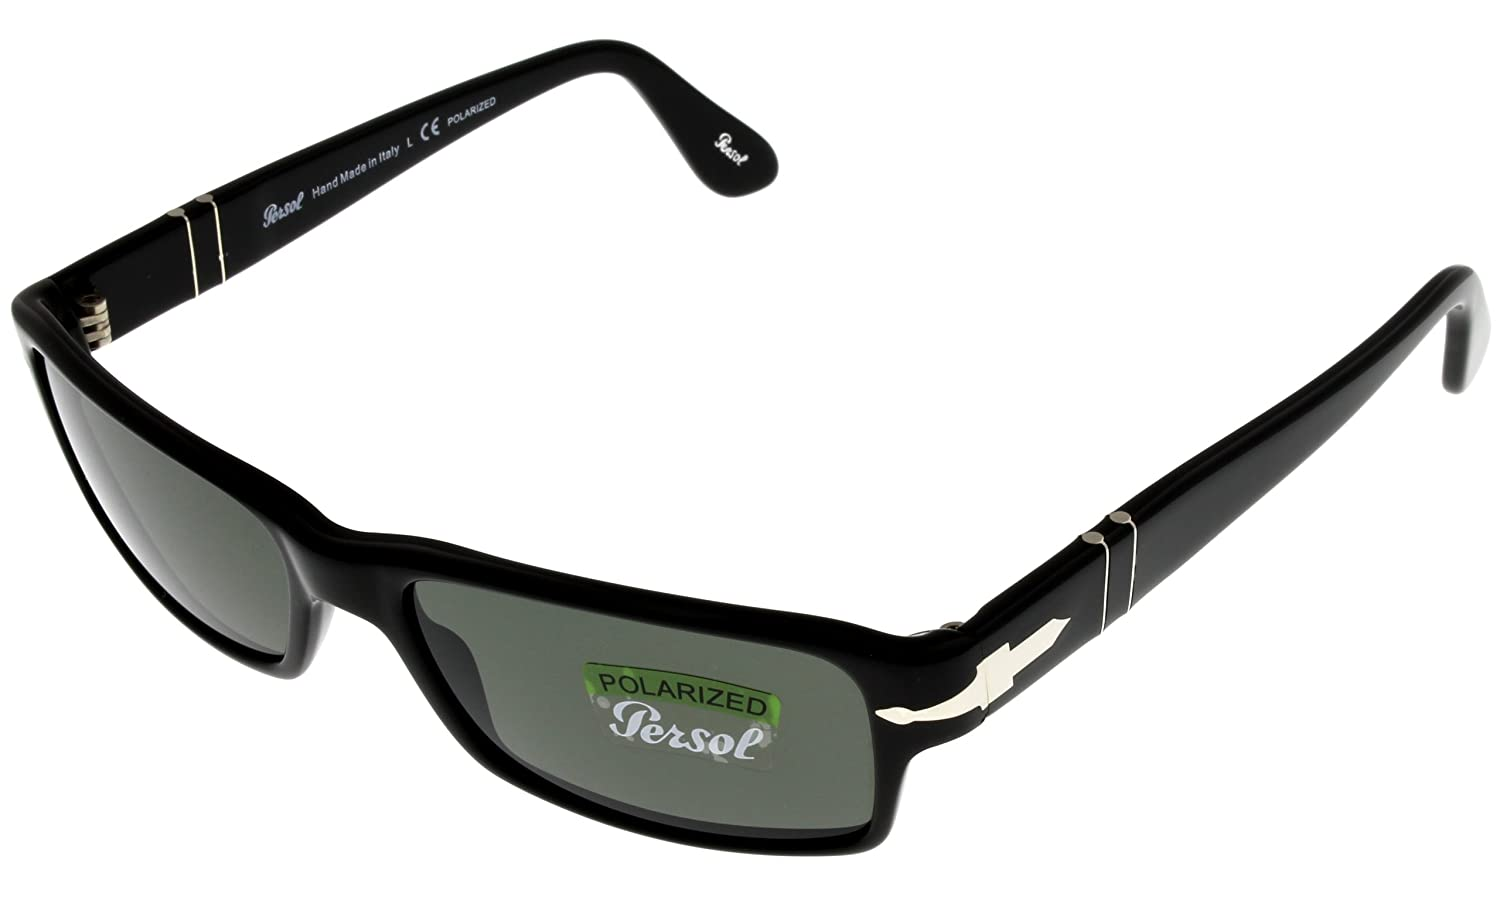 2bd65b096205 Persol Sunglasses Unisex Polarized Black Rectangular PO 2747-S 95/48 57:  Amazon.ca: Sports & Outdoors